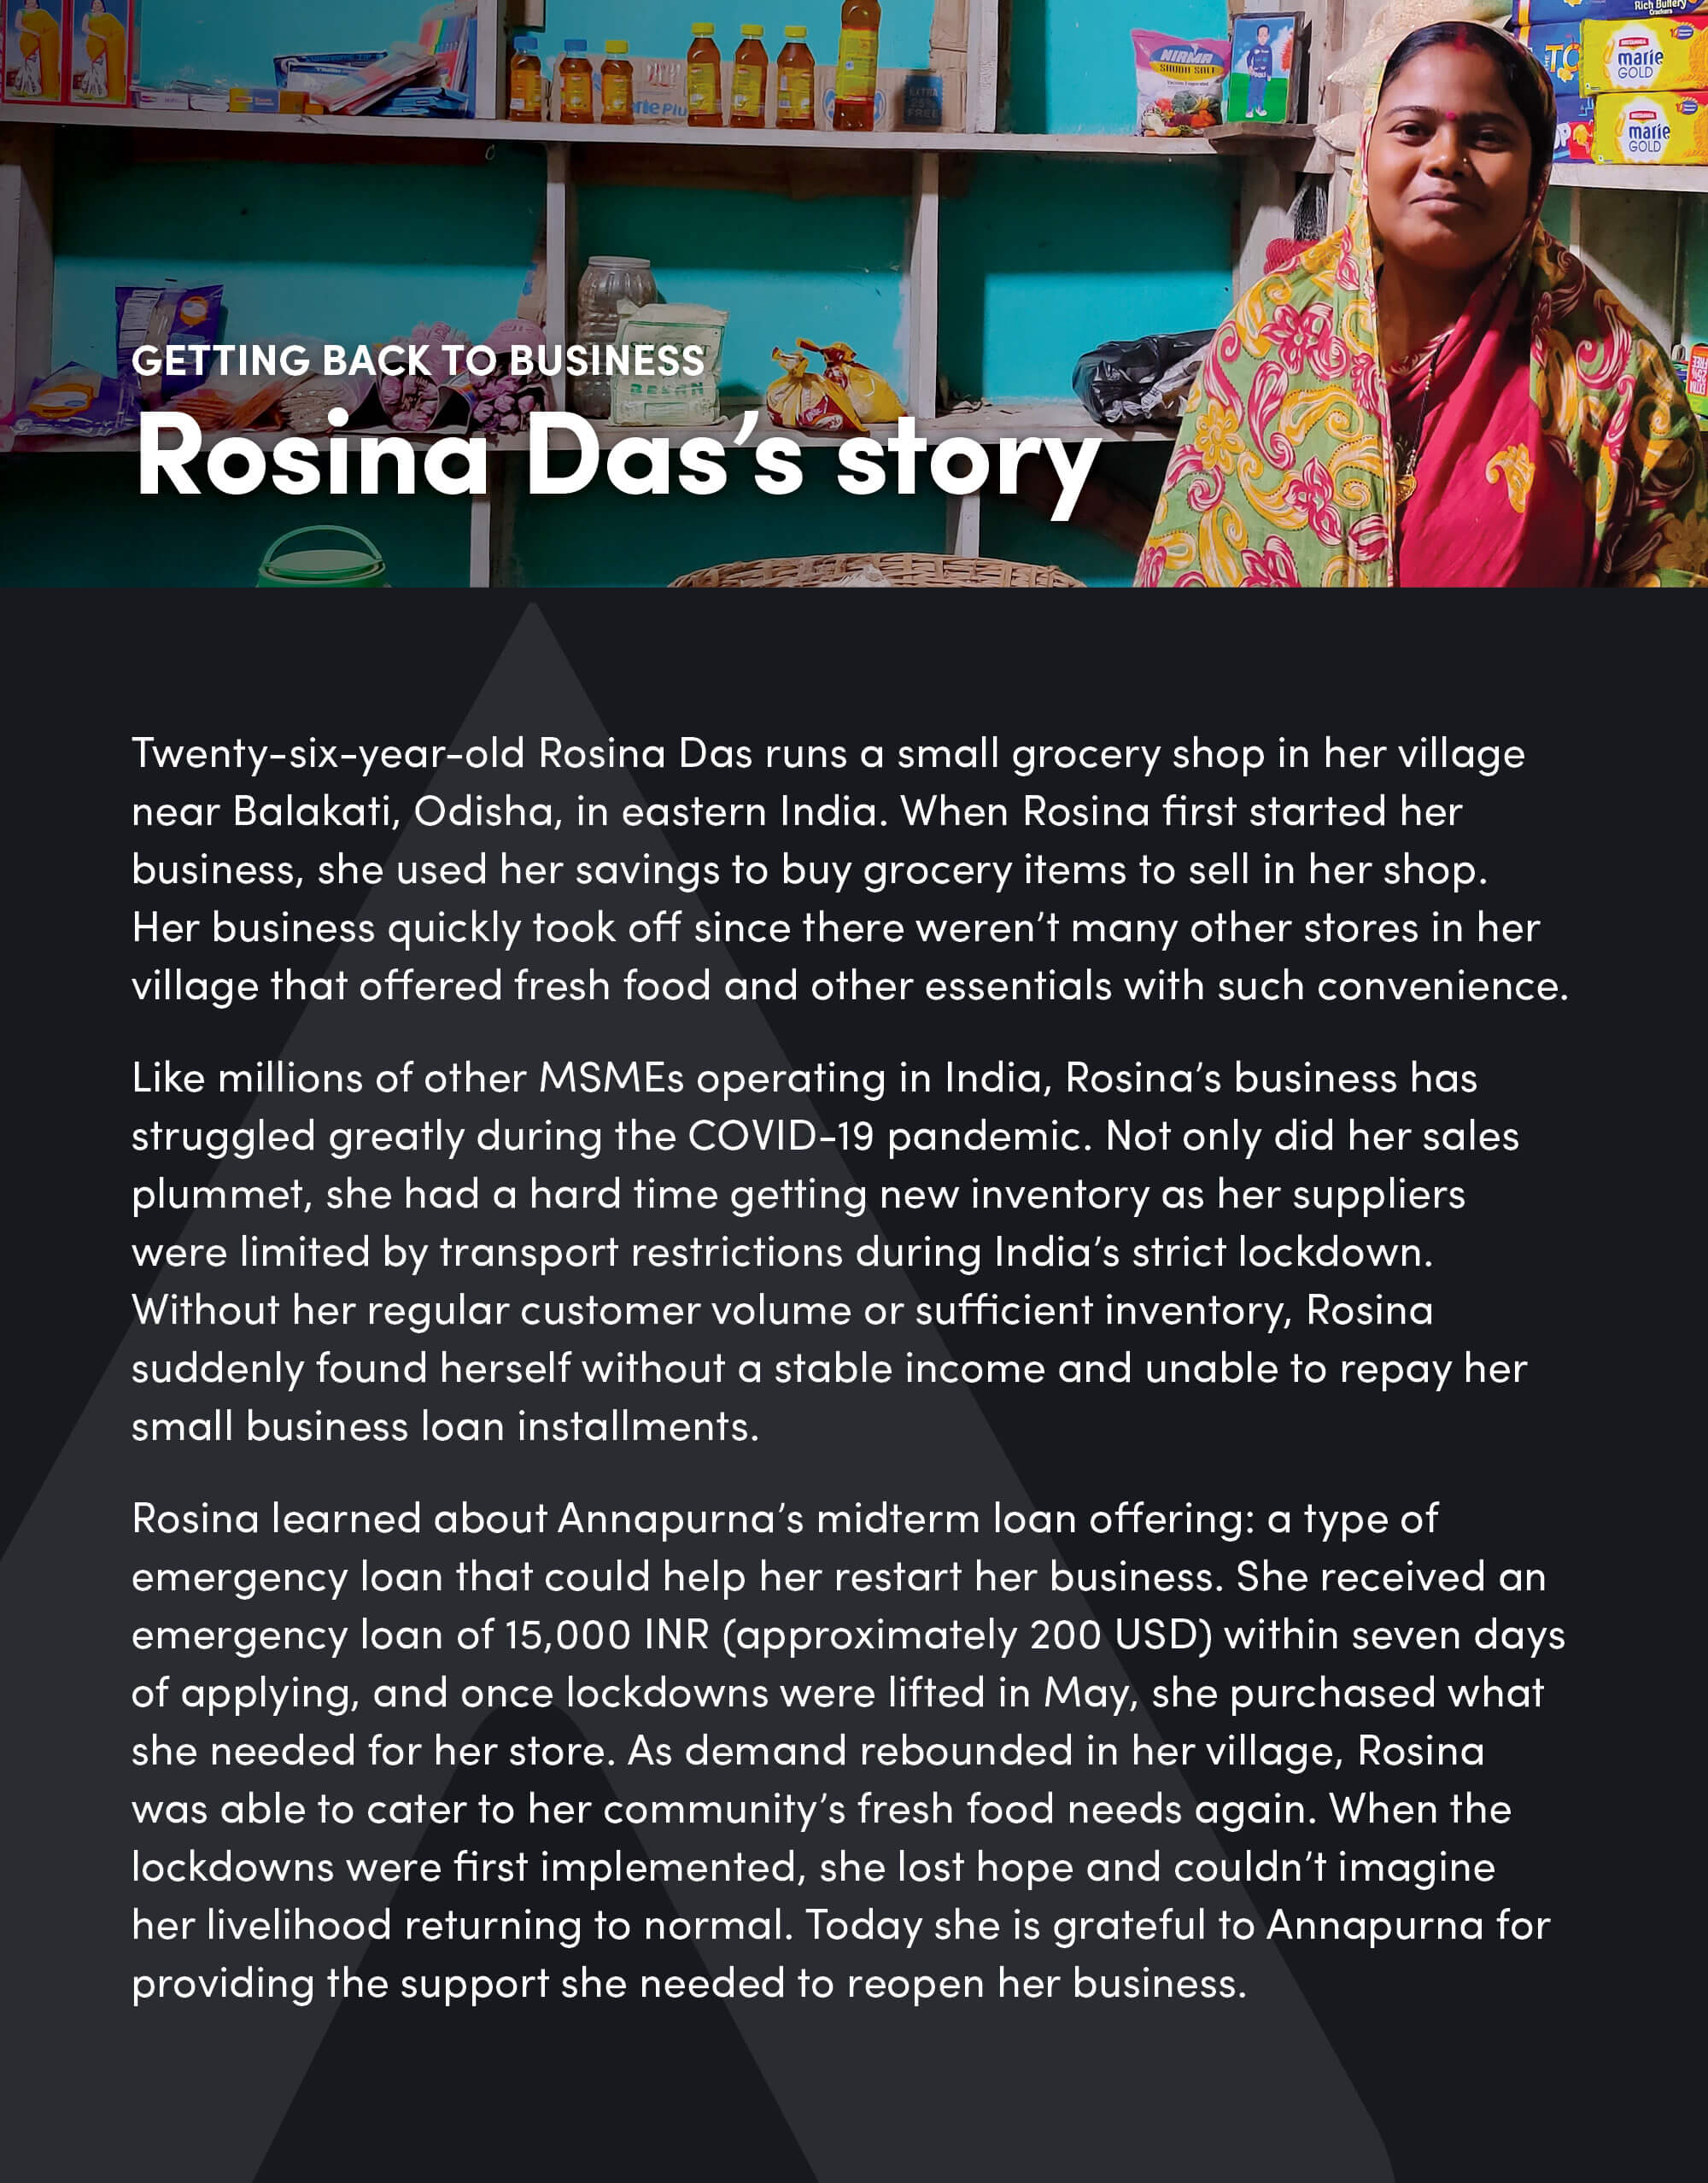 Getting back to business: Rosina Das's story